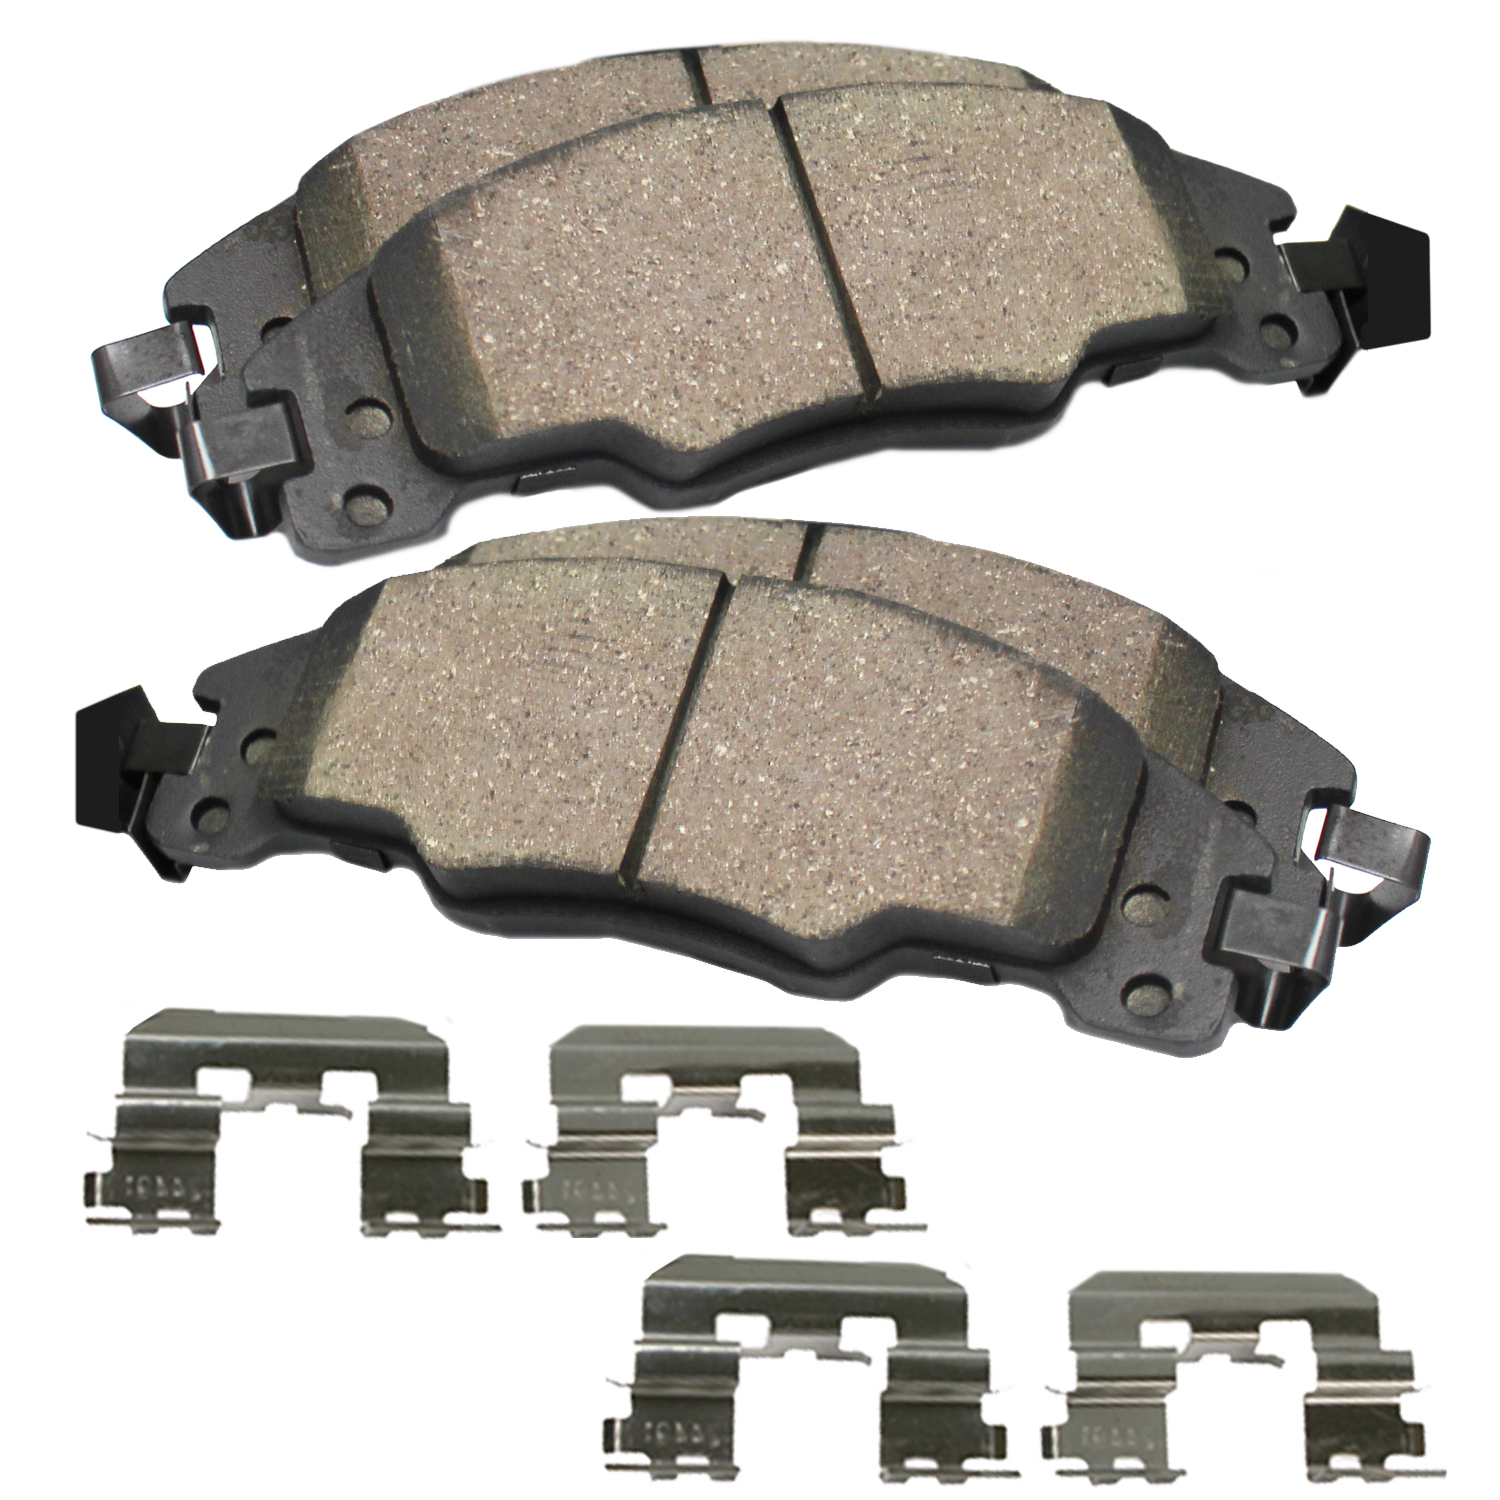 Rear Ceramic Brake Pads w/Hardware Kit for 1998-2002 Chevy Camaro/ Pontiac Firebird